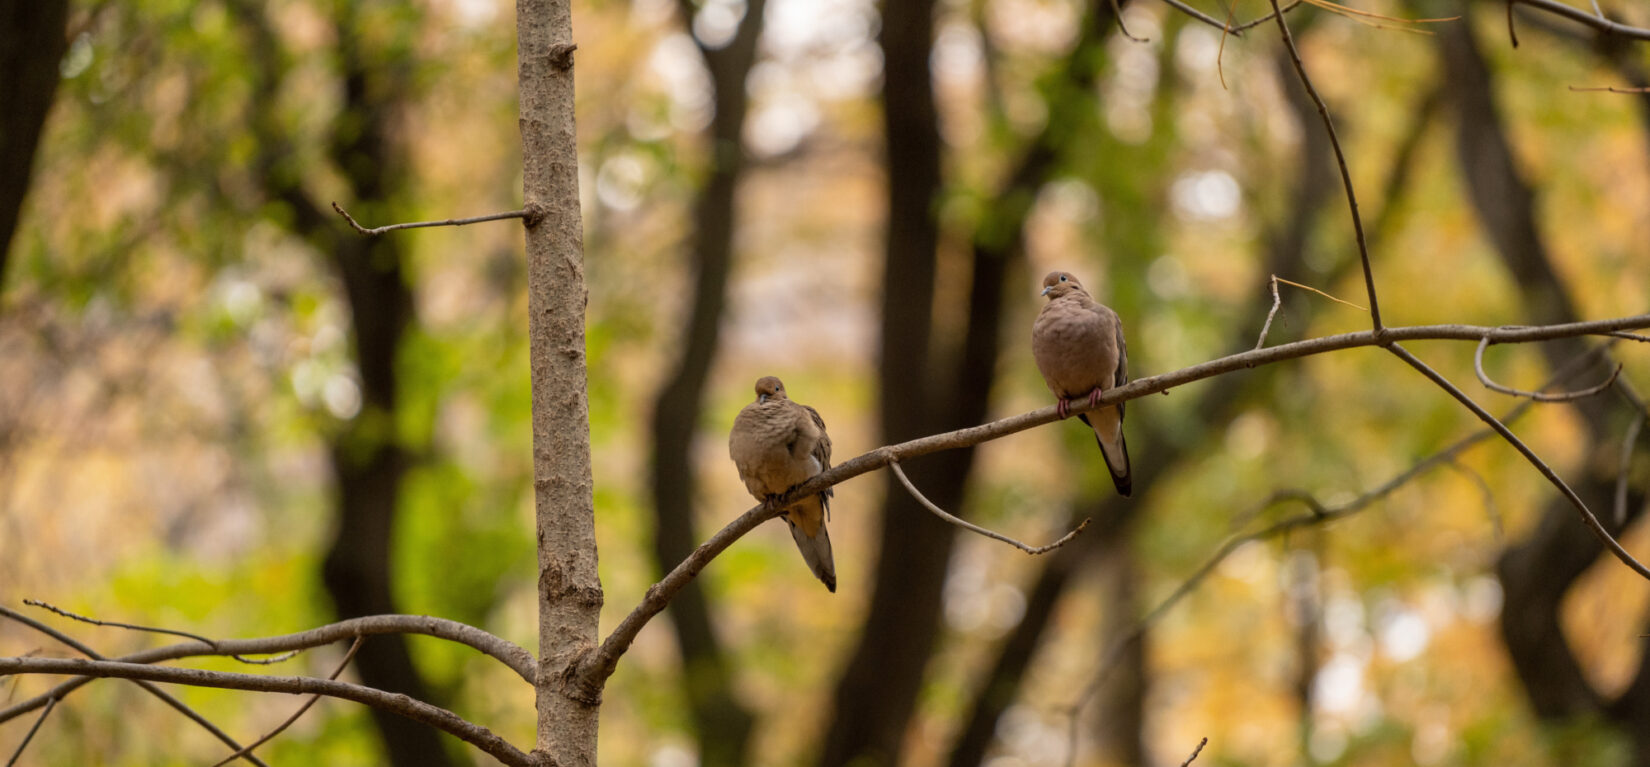 Birds on a branch in the Ramble